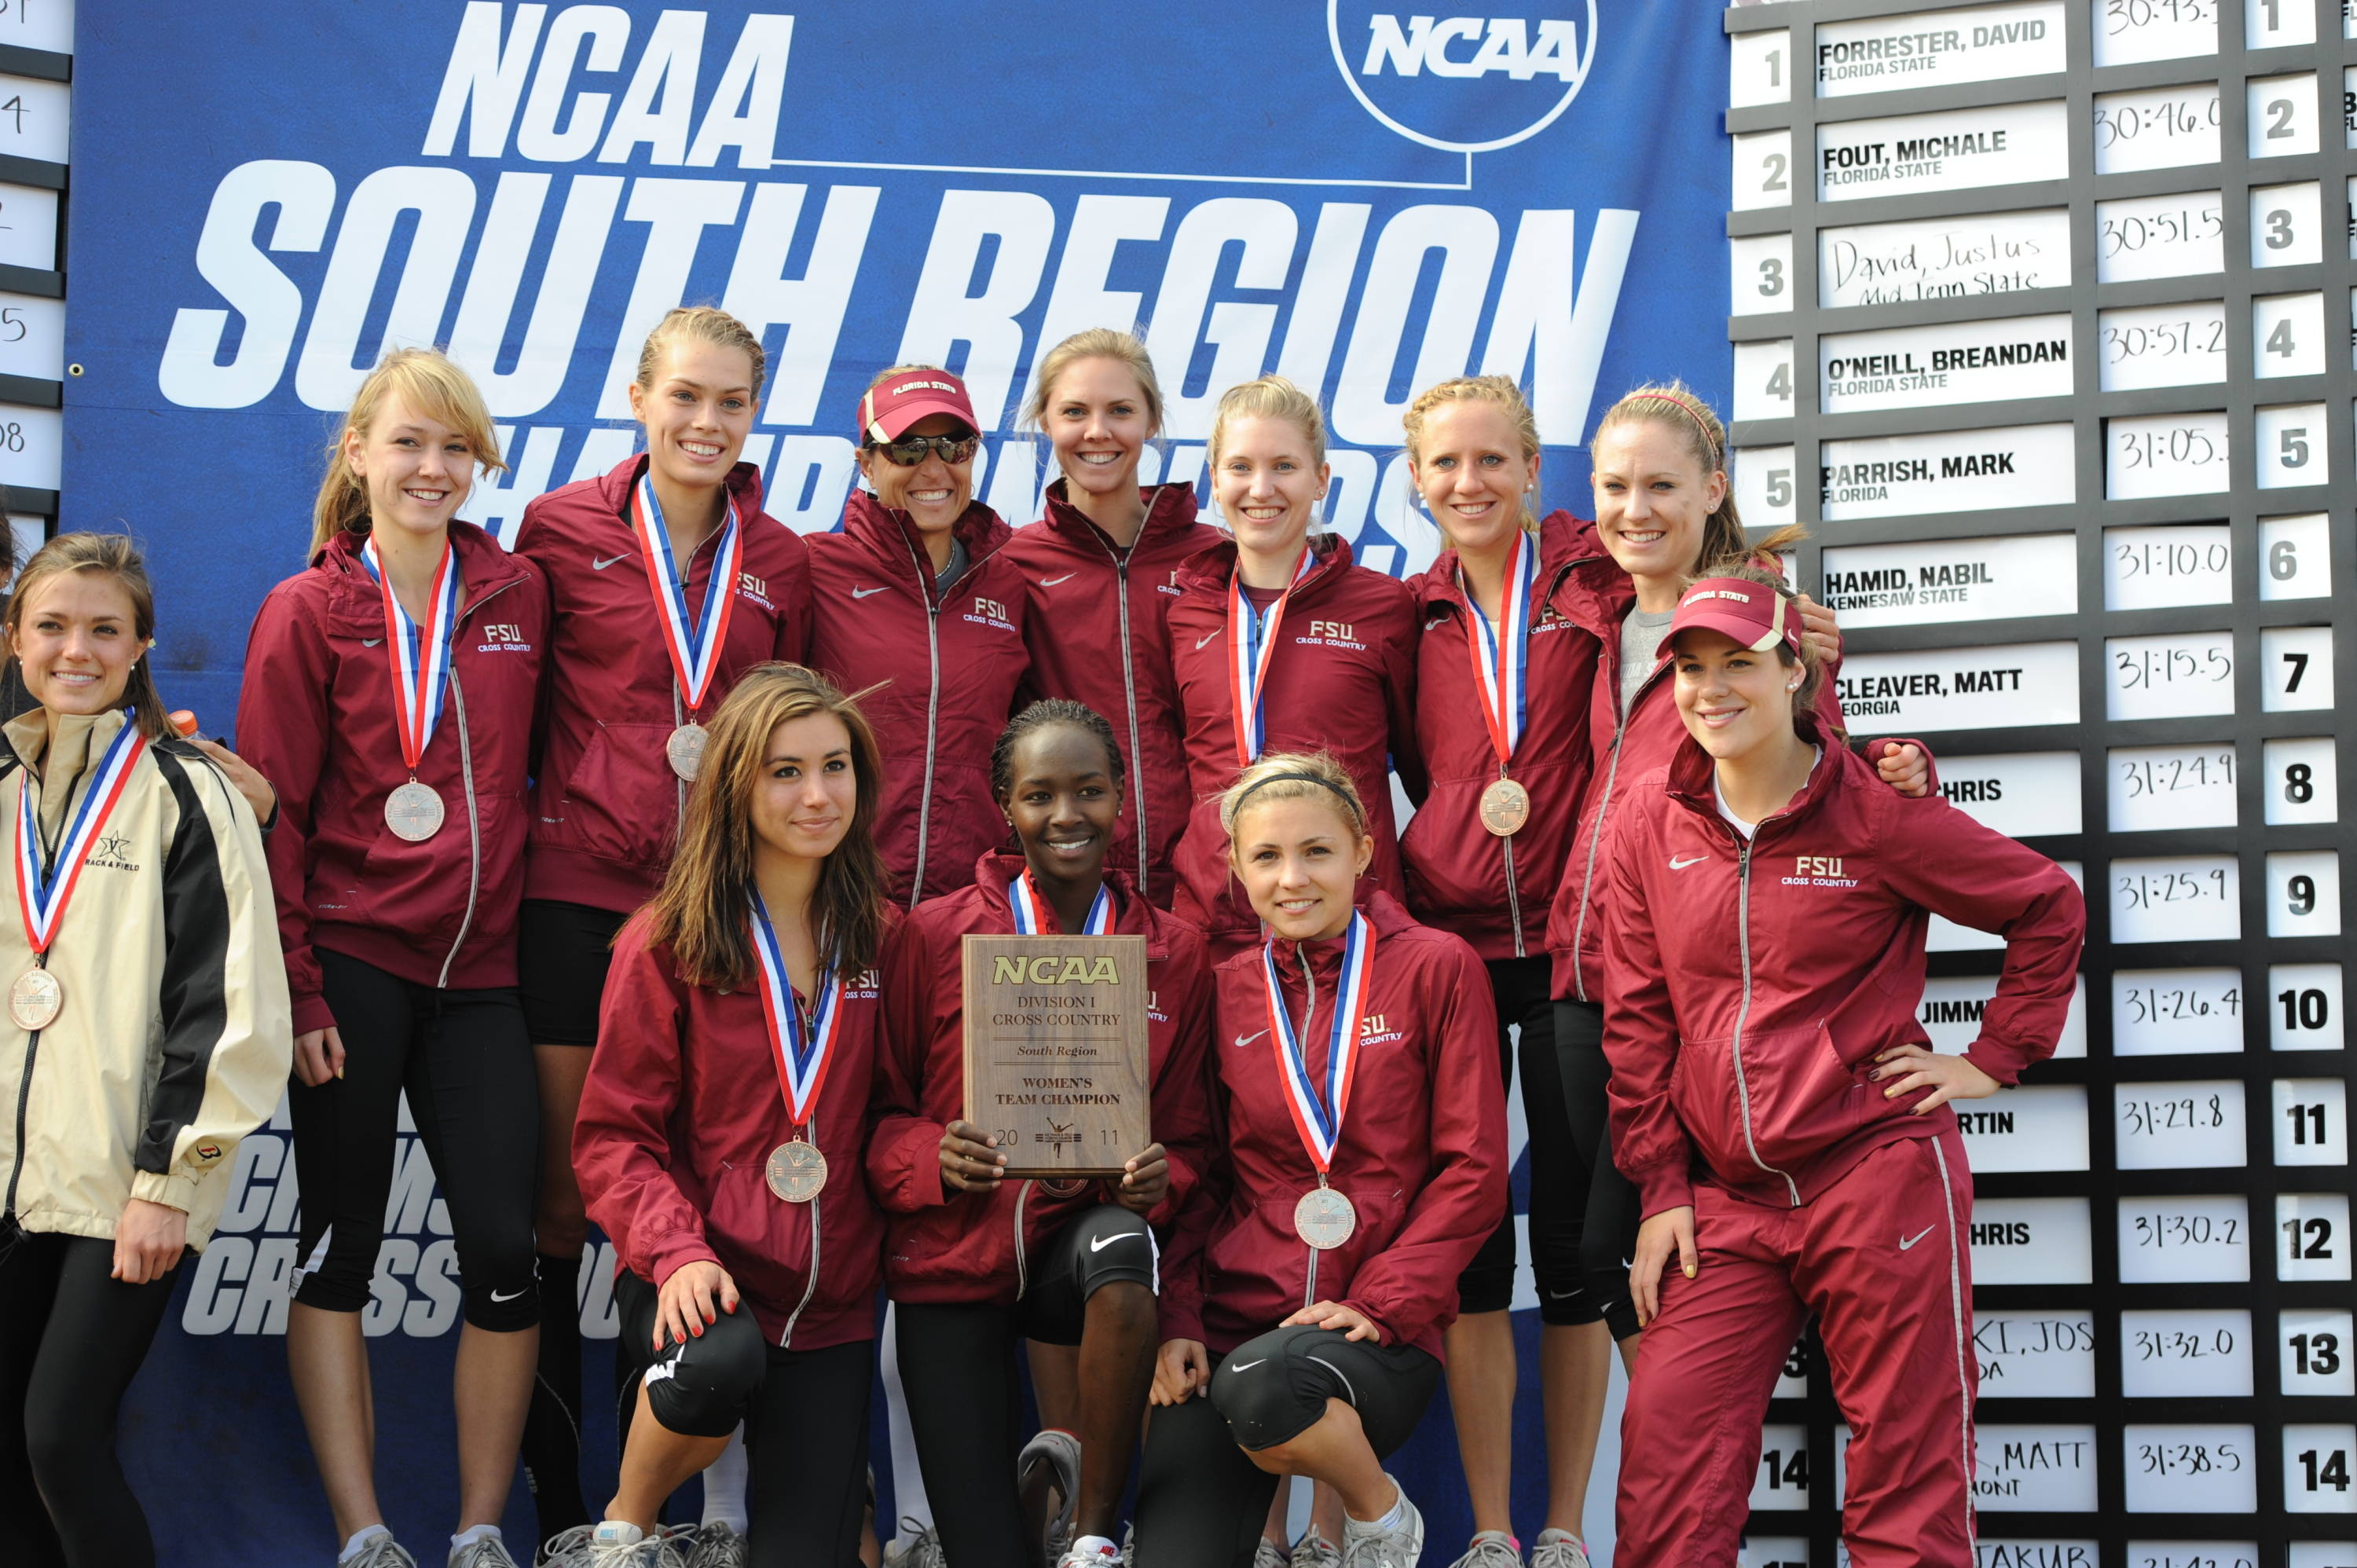 The Florida State women won their third NCAA South Region title in four years with a dominating finish in 2011 at Tuscaloosa, Ala.